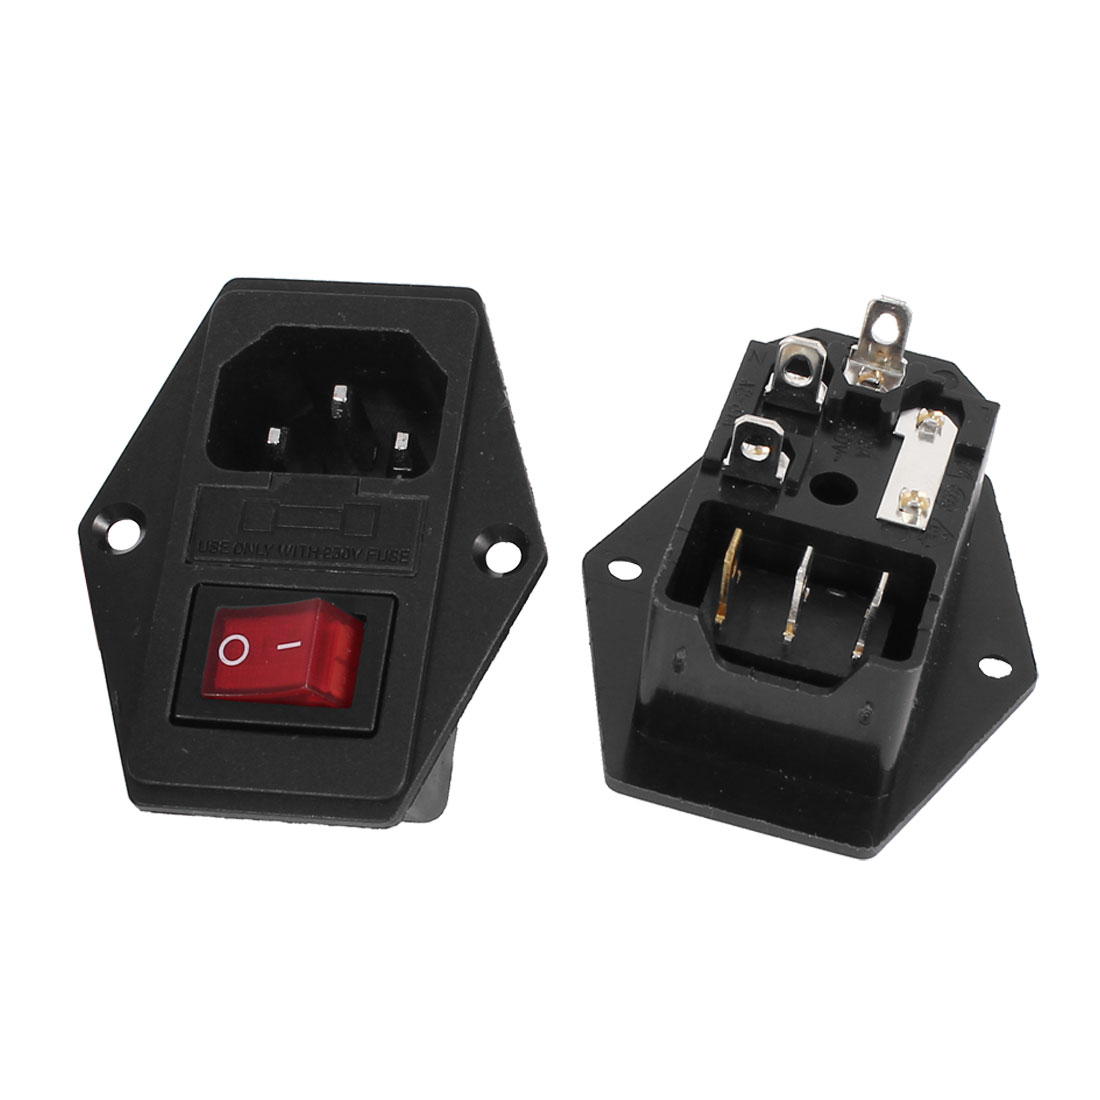 2 Pcs Red Indicator SPST Rocker Switch Fuse Holder IEC320 C14 Power Inlet Socket